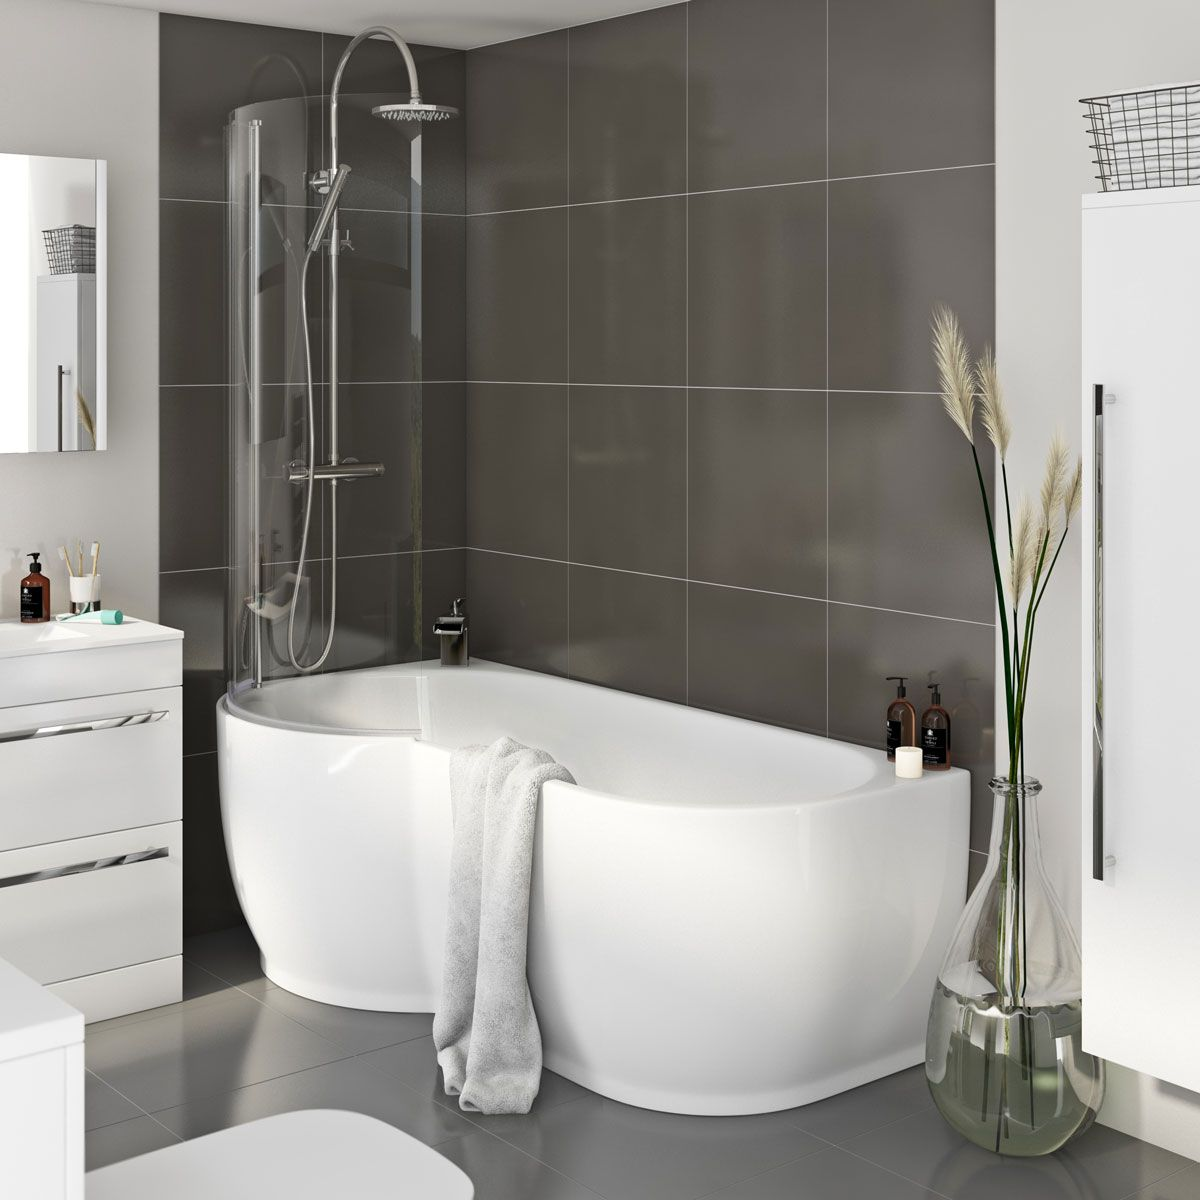 Ordinaire 5 Tips On Buying The Best Bathroom Suites